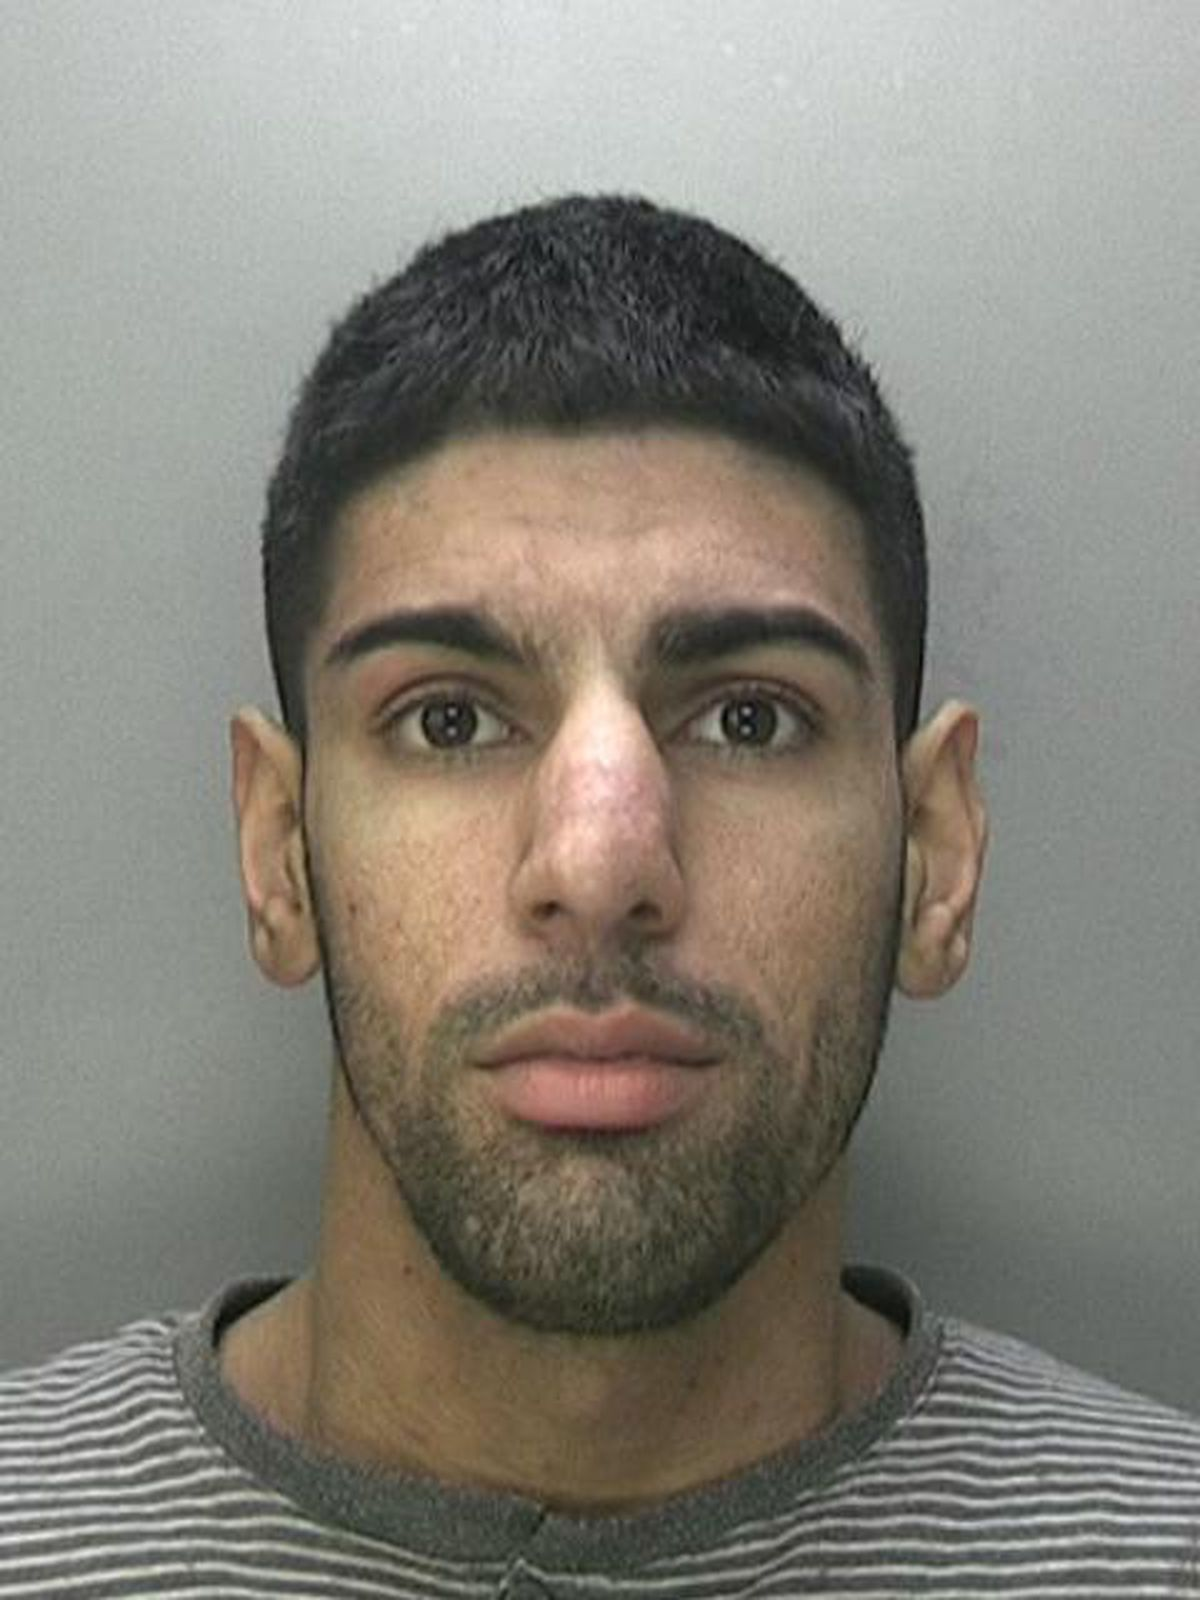 Alimaan Hussain was given a two-year suspended jail sentence and 200 hours of unpaid work after pleading guilty to conspiracy to commit burglary